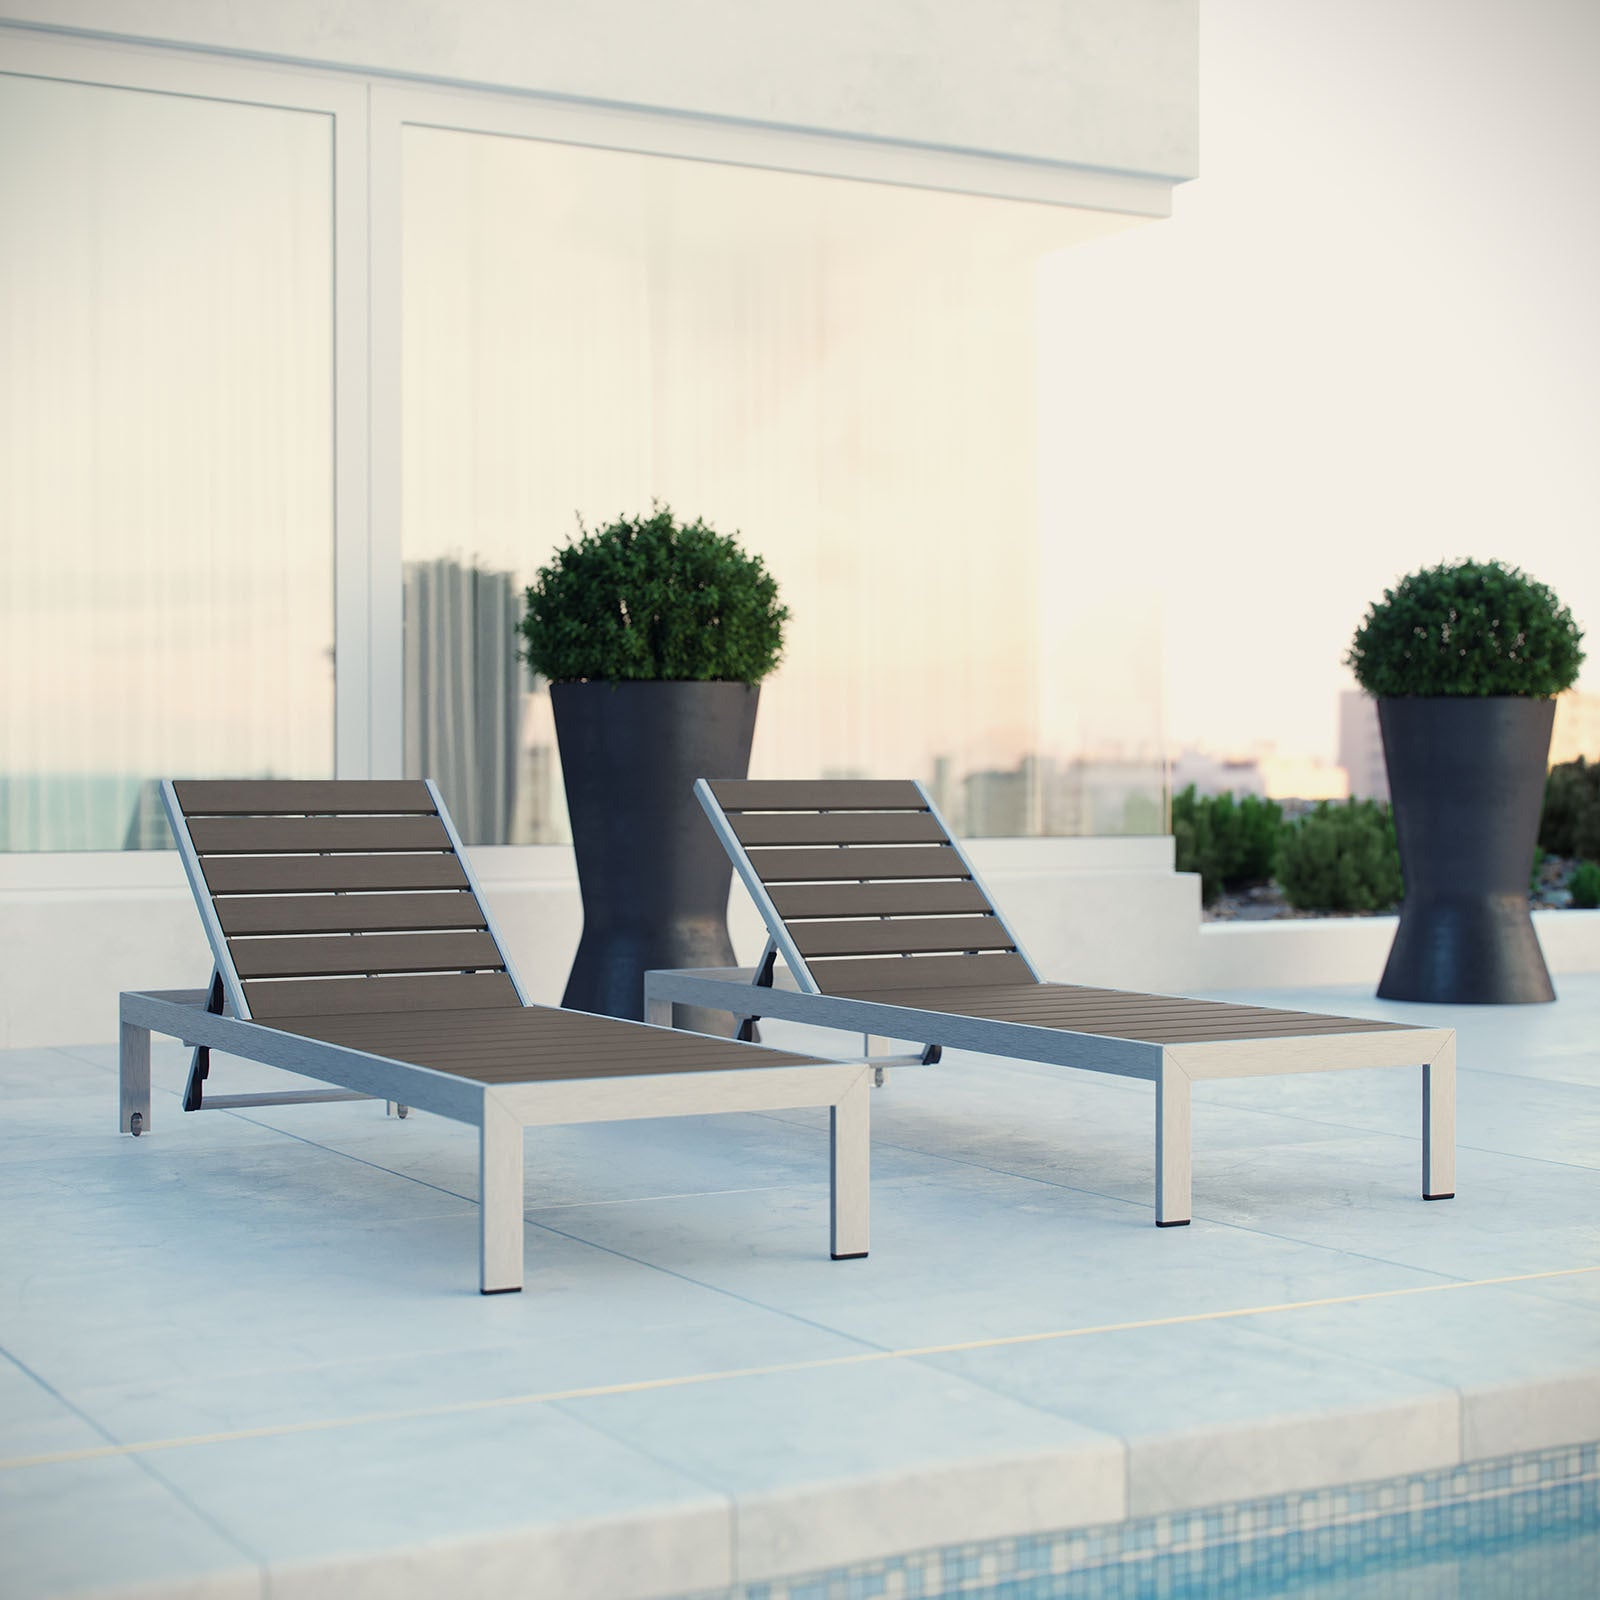 Most Recent Shore Aluminum Outdoor Grey 2 Piece Patio Chaise Lounger Set In Shore Aluminum Outdoor Chaise Lounges (Gallery 22 of 25)